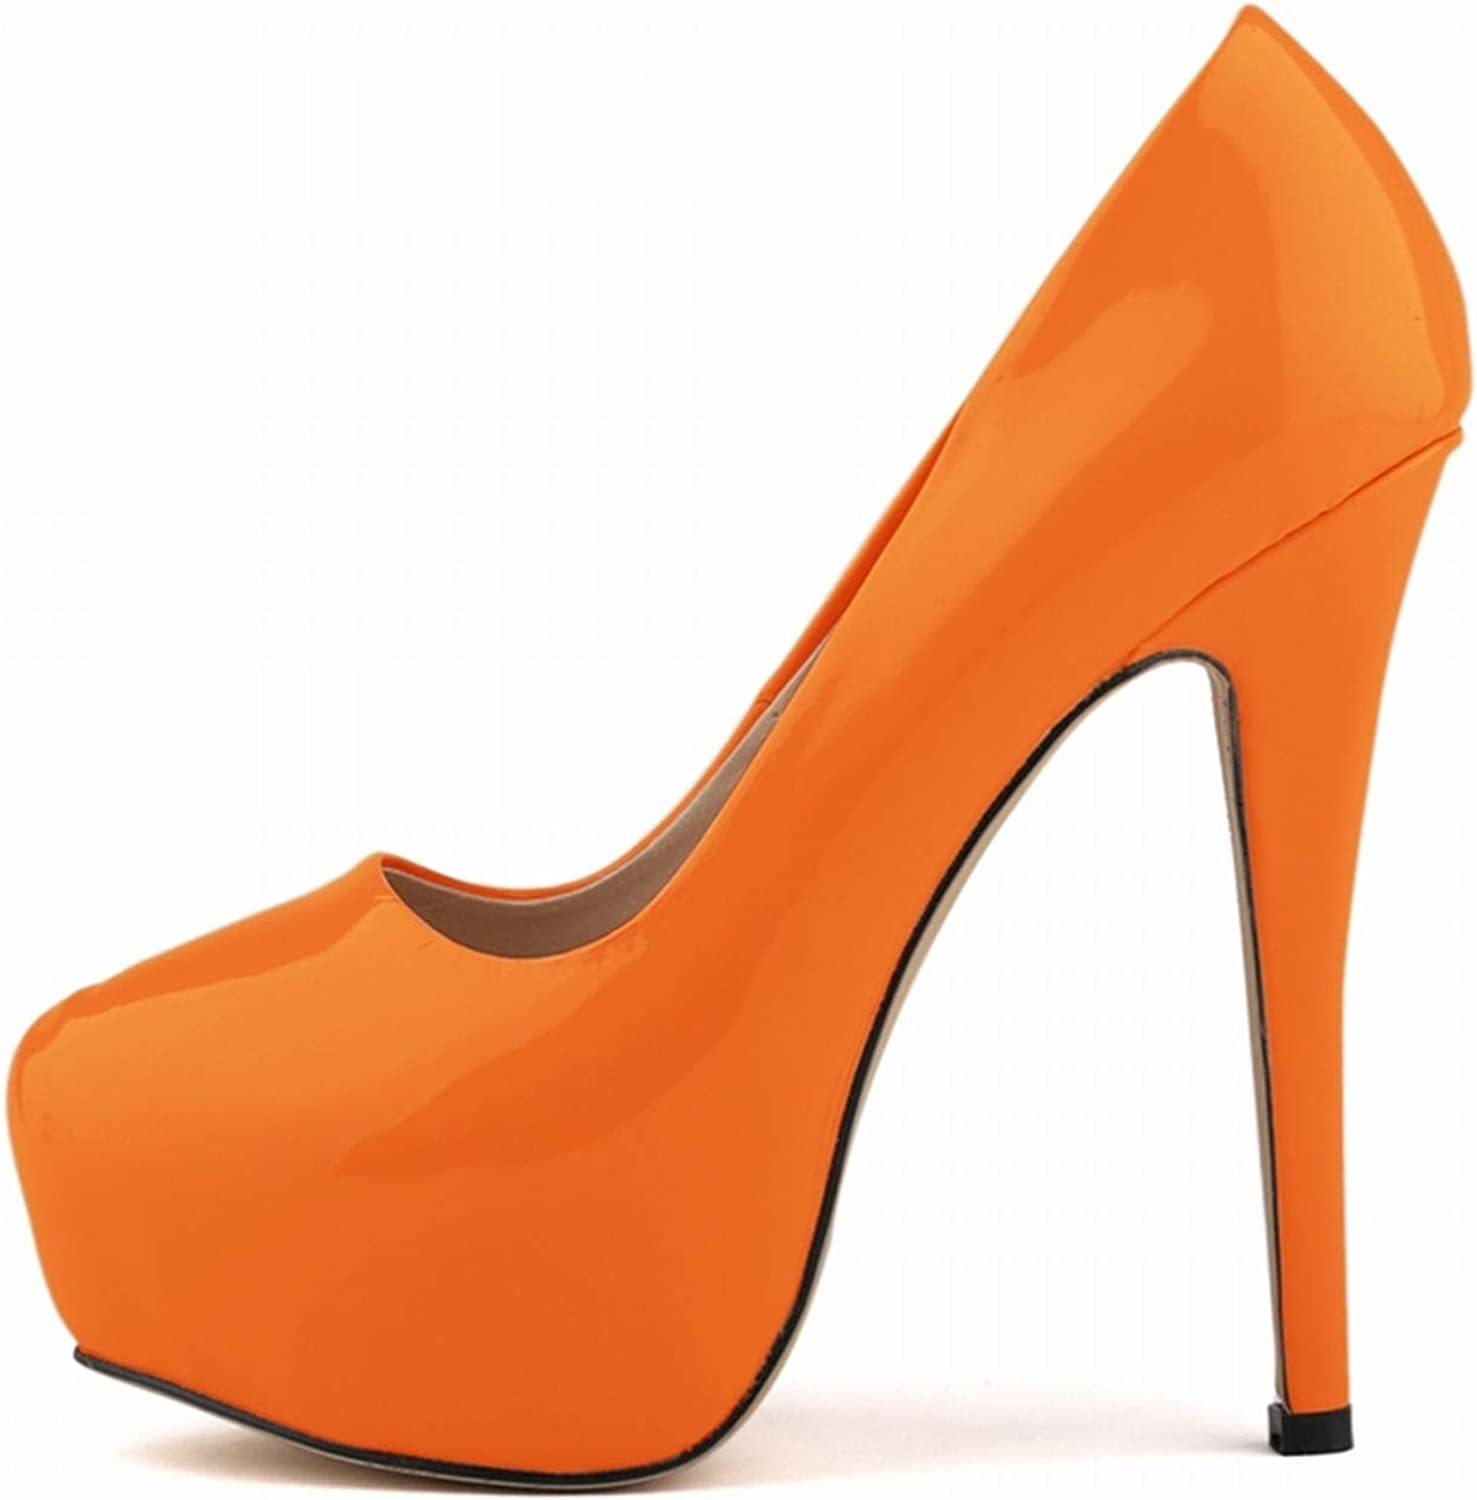 Rngtaqubeic Fashion PU Leather Women Pumps Female Casual Solid Platfrom Nightclub Shoes